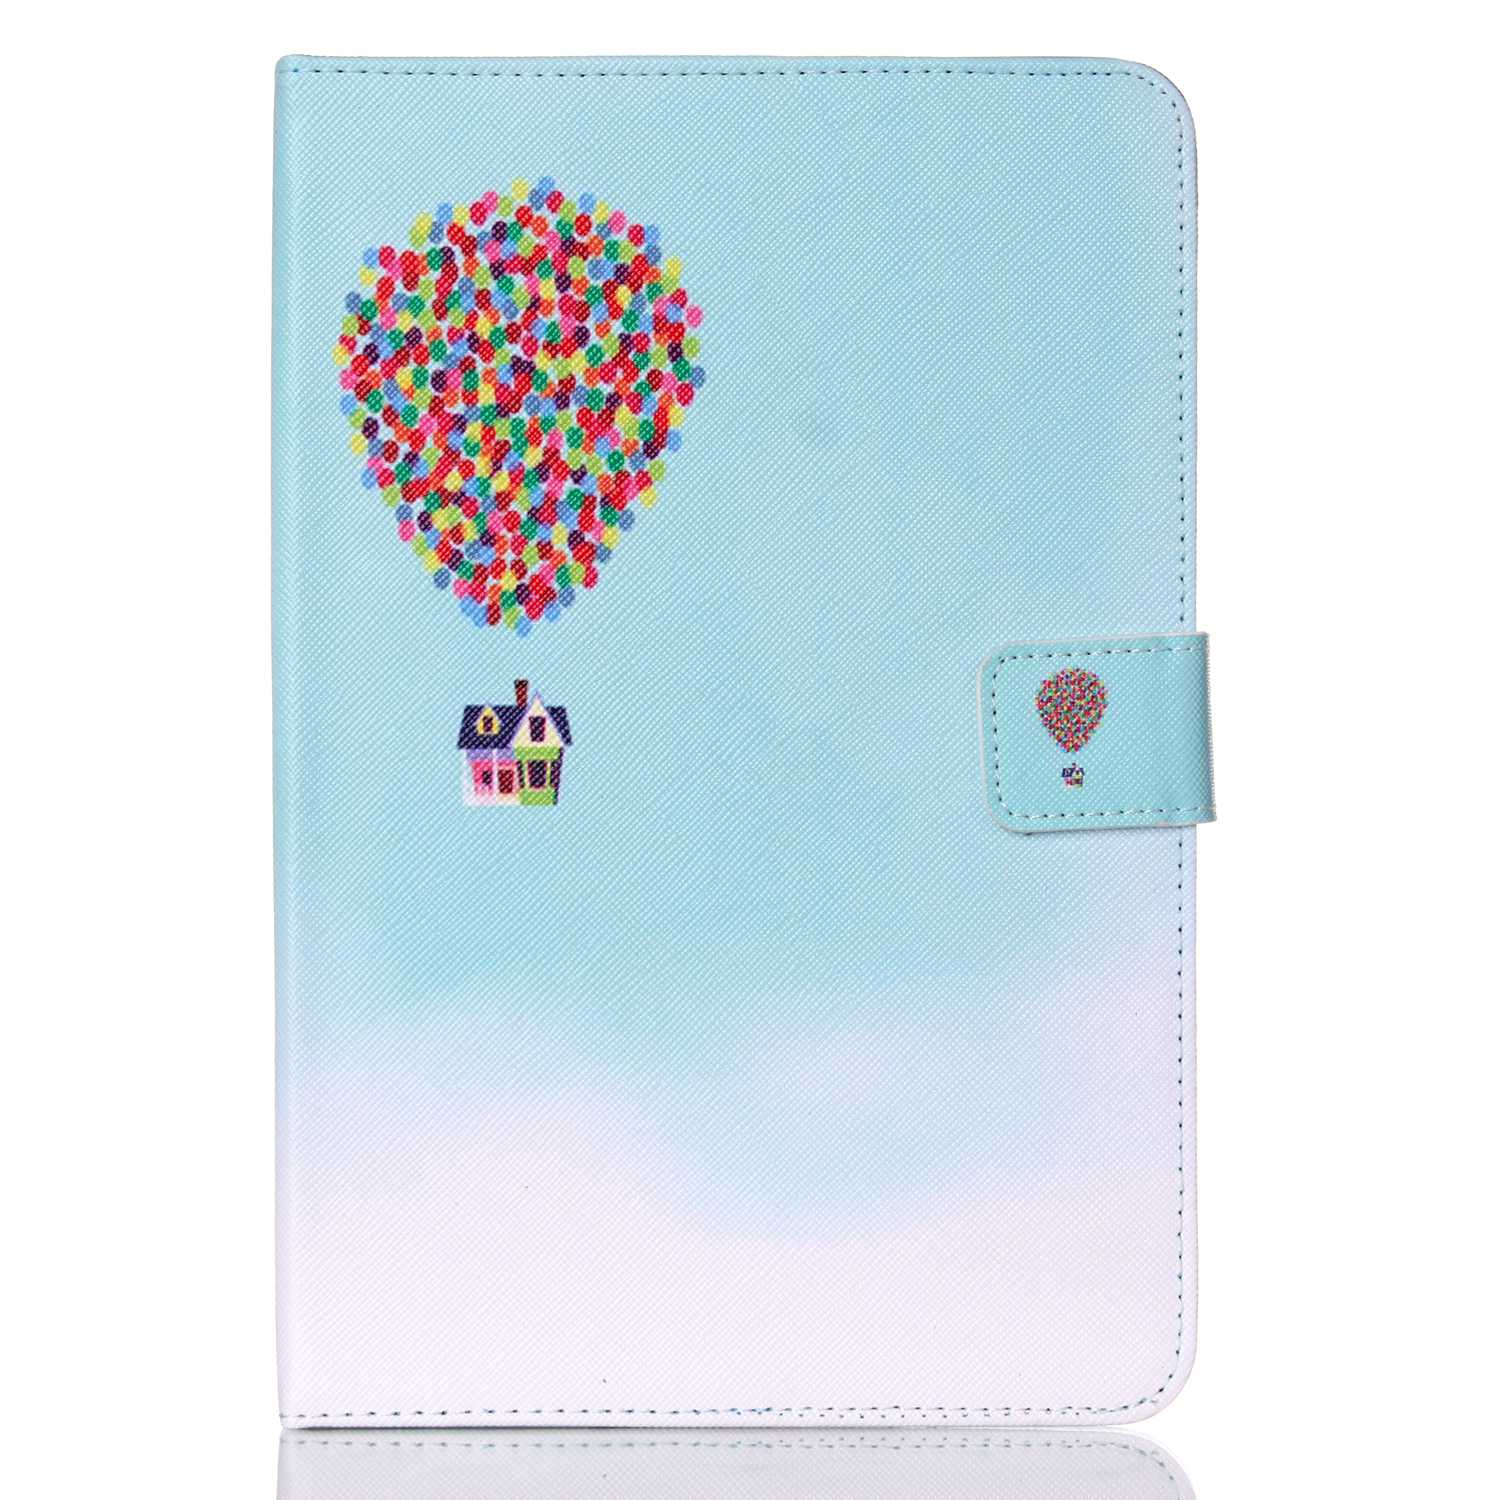 PU Leather Case For Samsung Galaxy Tab A 8.0 T350 T355 SM-T350 SM-T355 P355C P350 8'' Tablet Cover Case T350 Folio Case #D